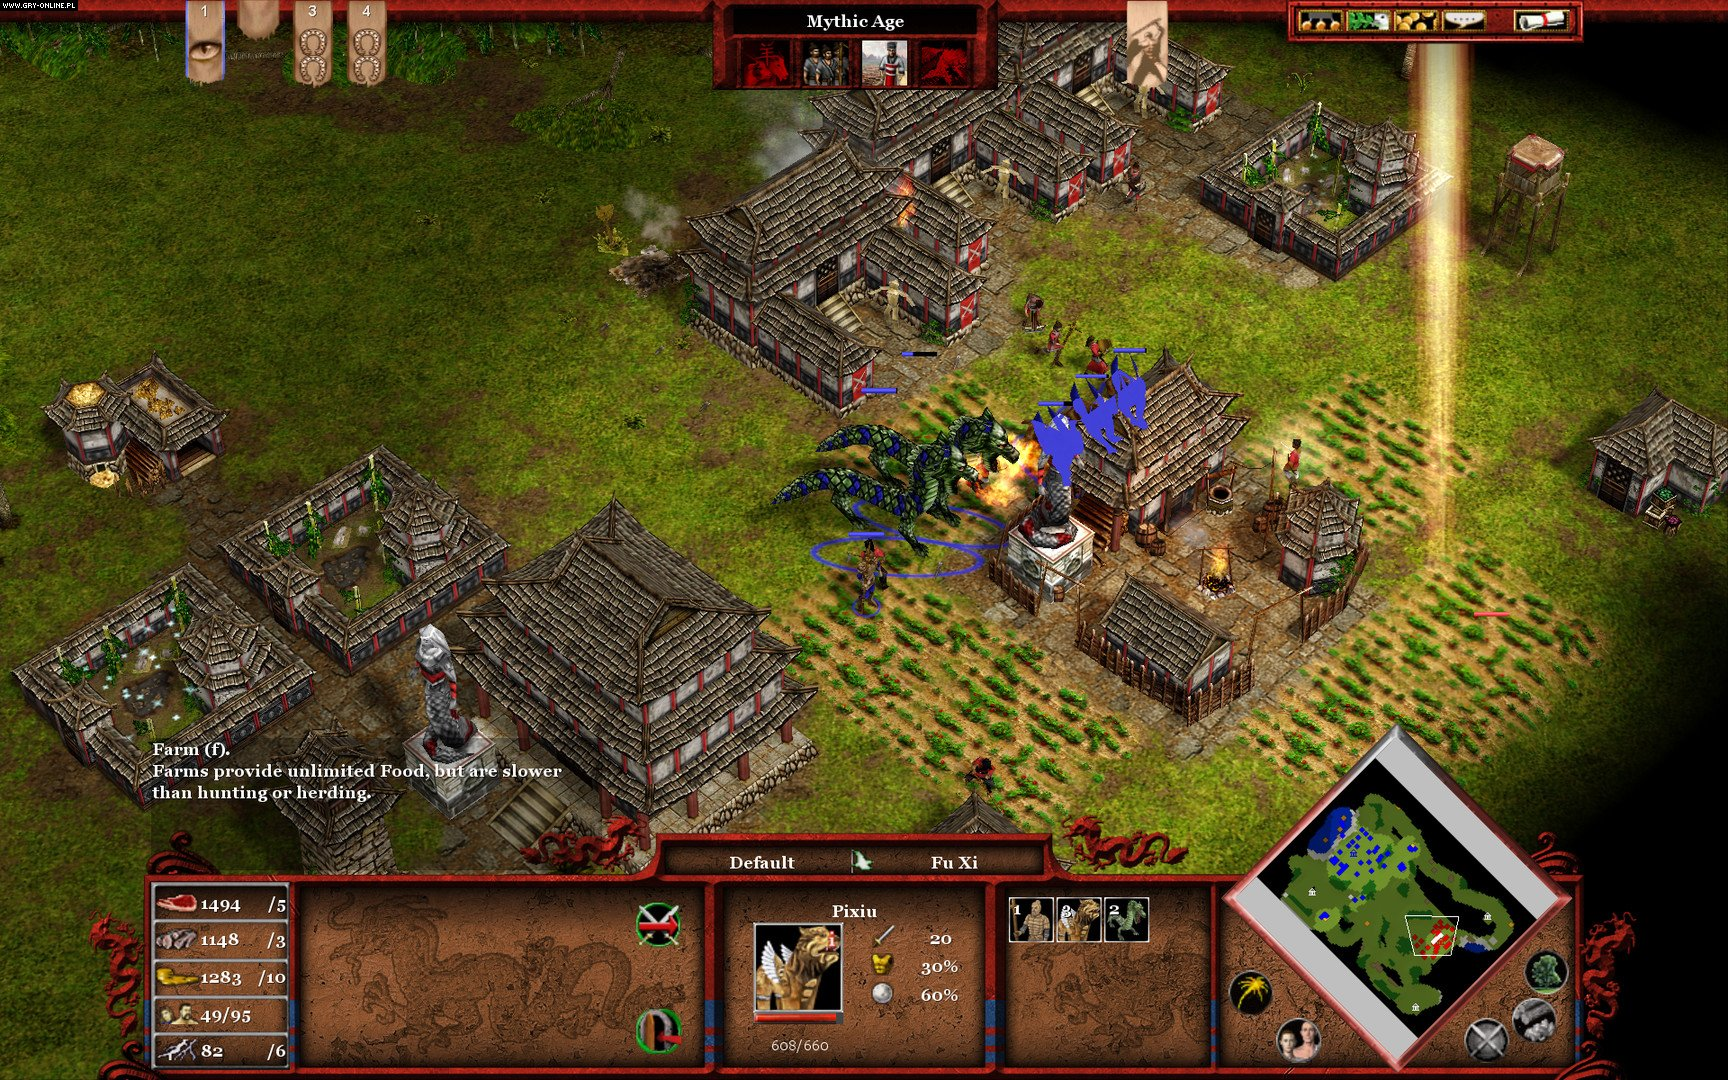 Age of Mythology: Tale of the Dragon PC Games Image 5/5, SkyBox Labs, Microsoft Studios